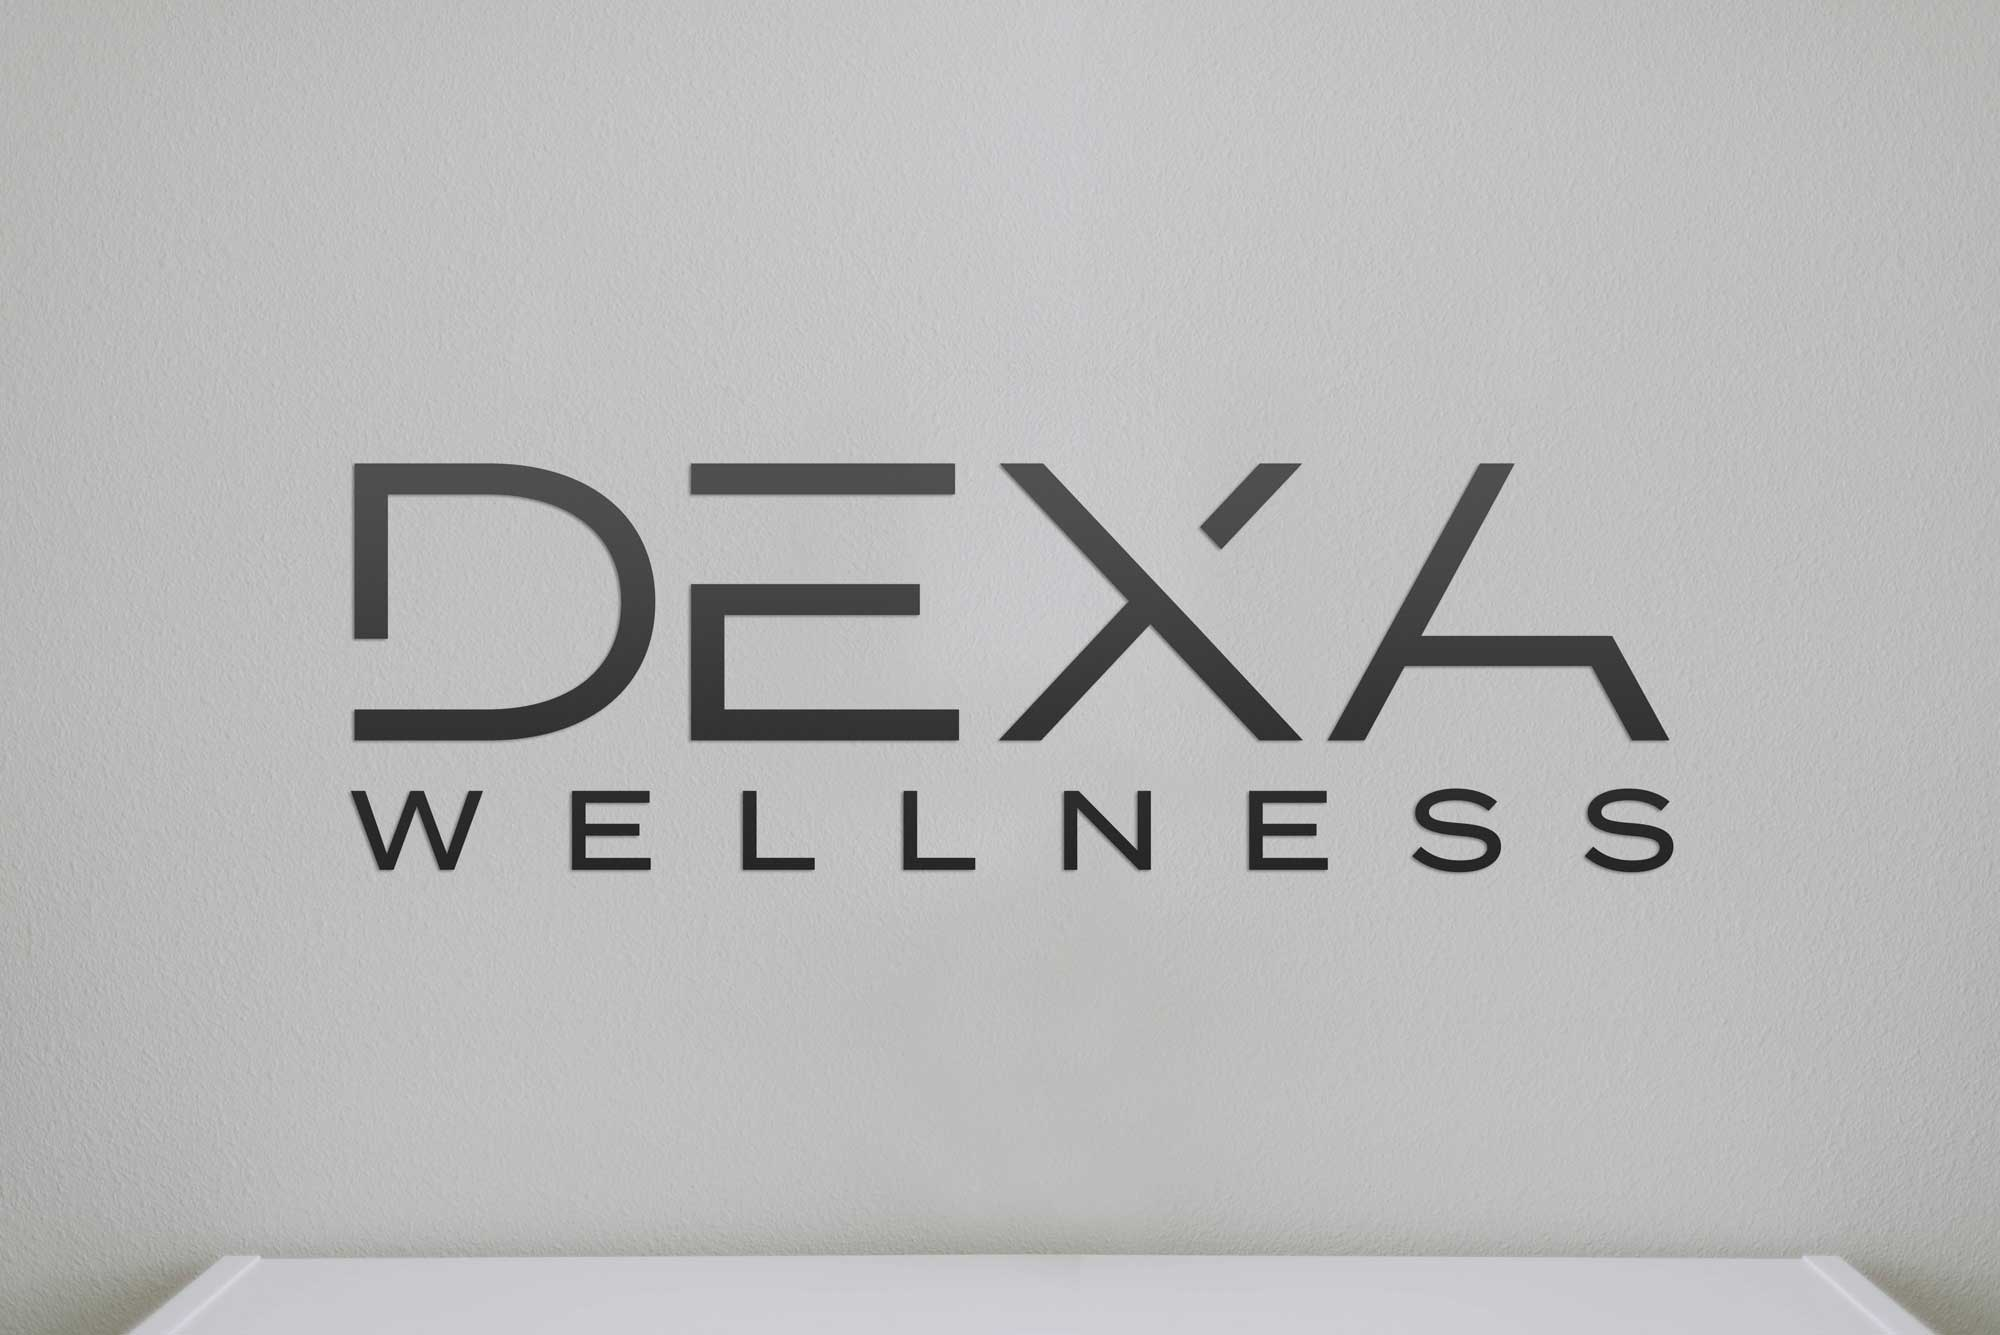 A facility offering medical-grade body composition scanning, fitness testing, wellness and nutrition coaching.